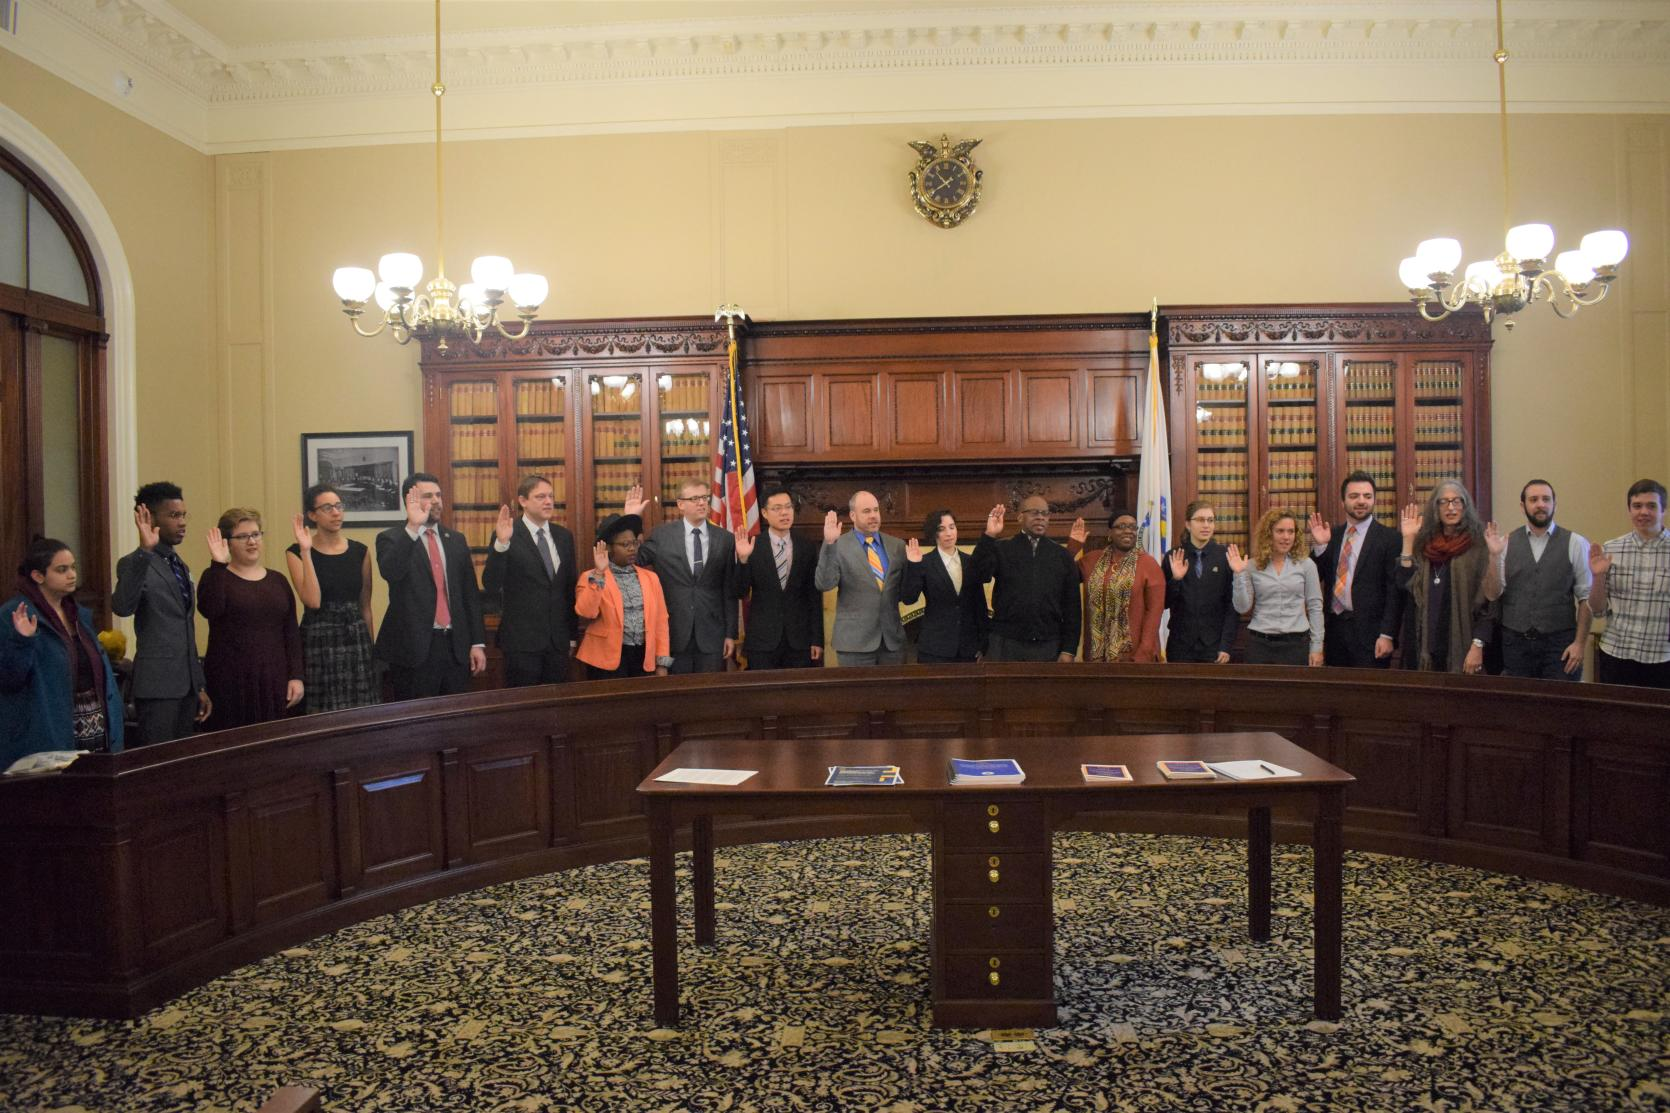 LGBTQ Youth Commission at Massachusetts State House